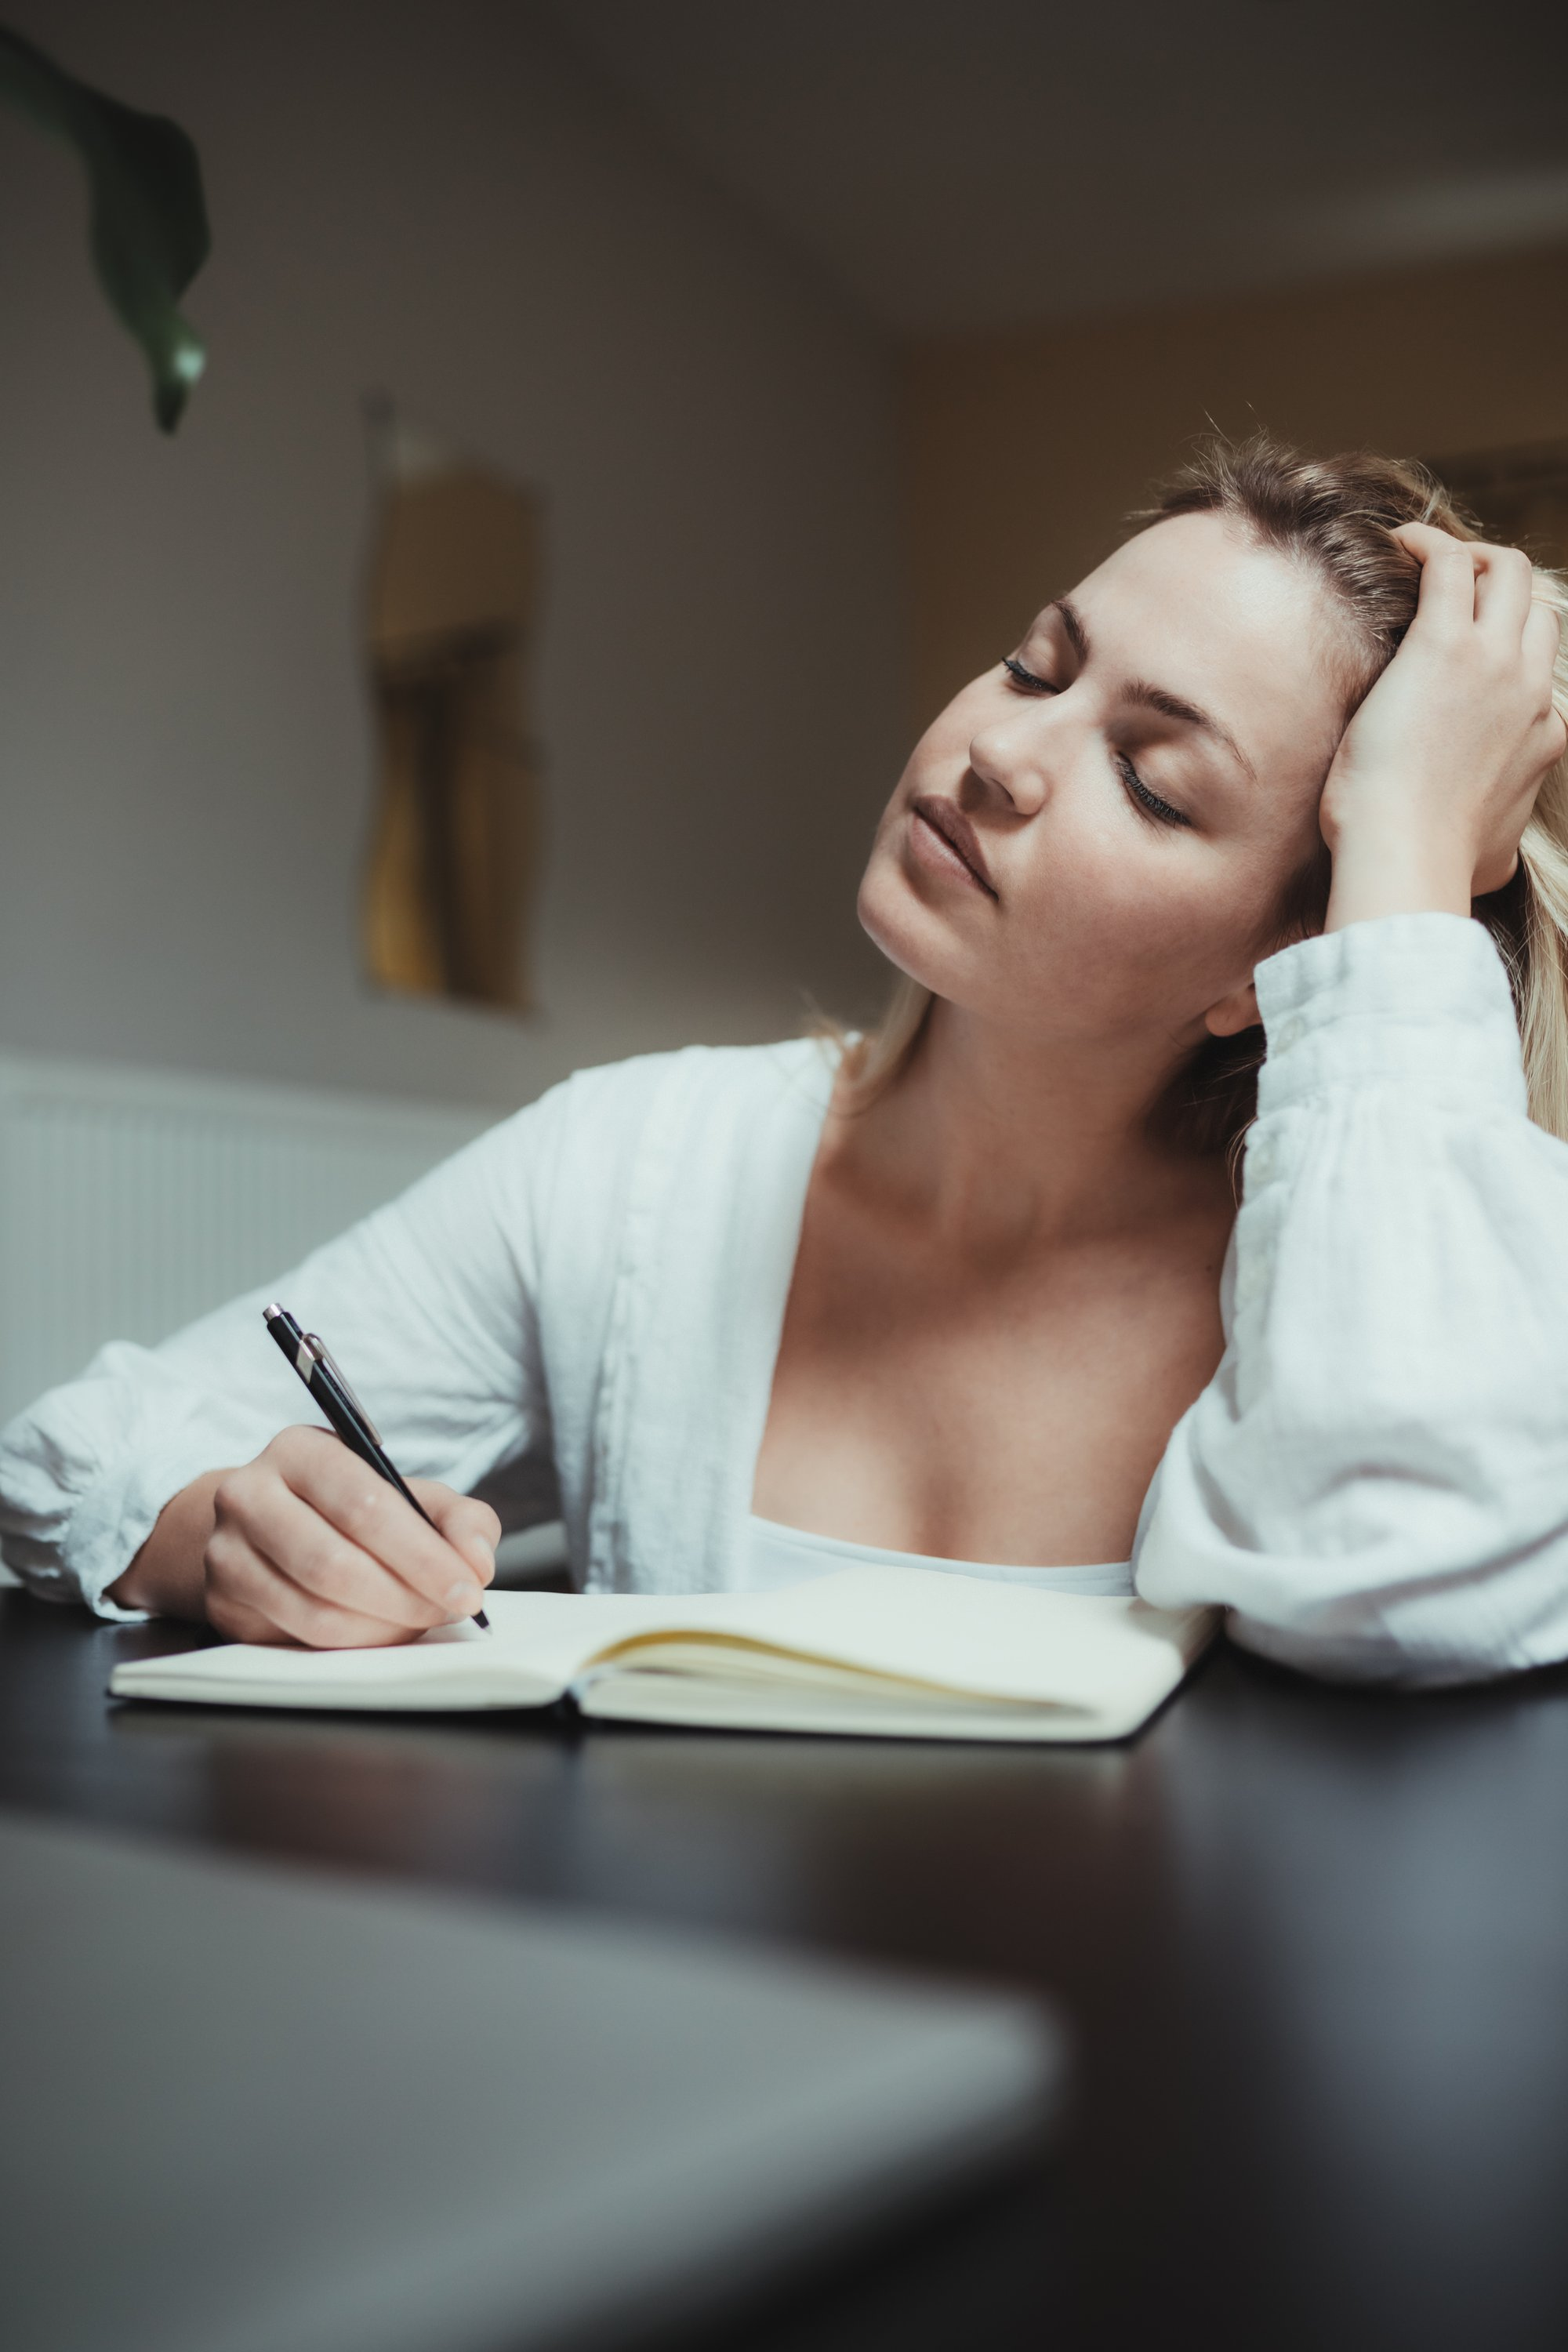 woman holds her head thinking while writing in a journal 在日记里写作时,女人抱着头思考。